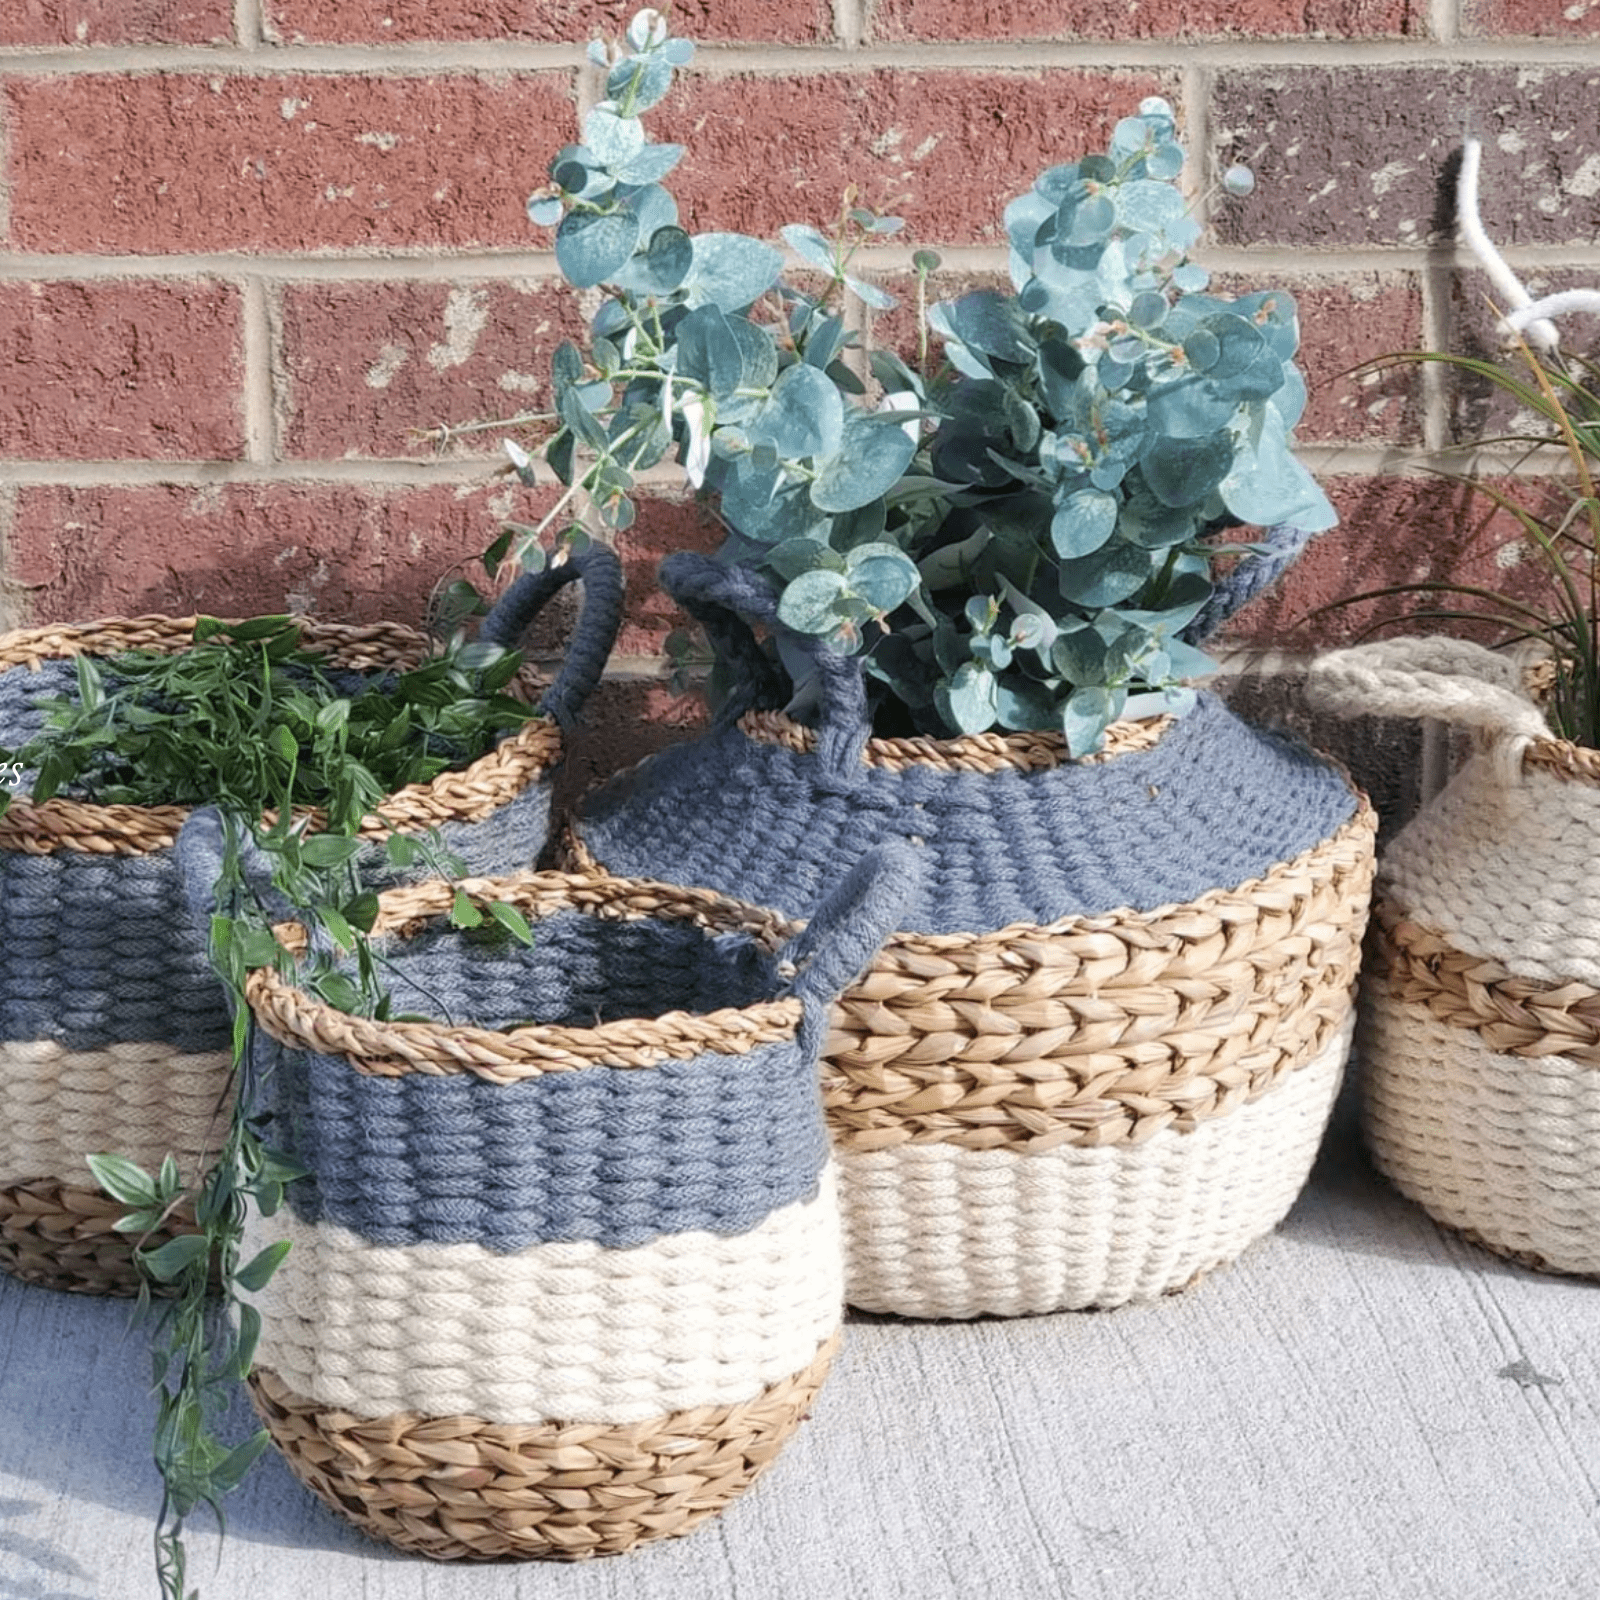 What does it mean to shop with purpose - ULA Jute baskets